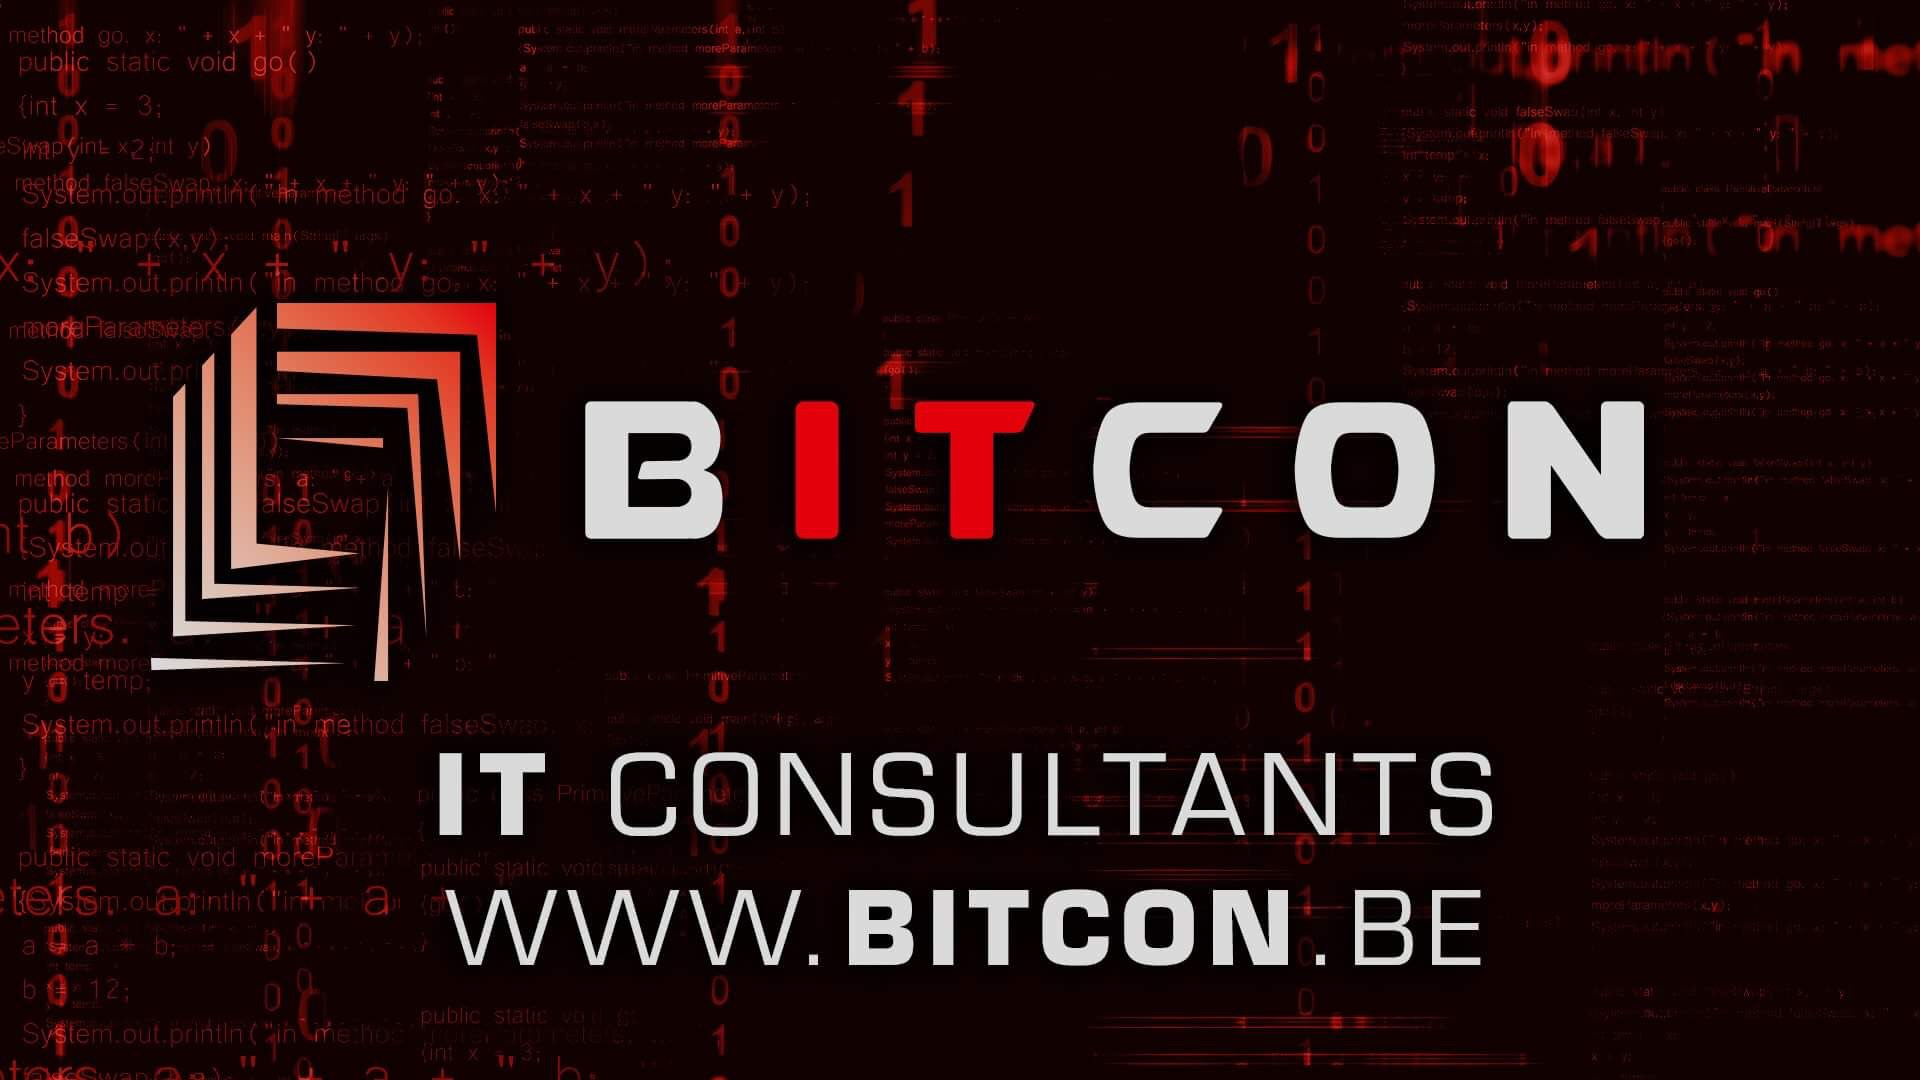 BITCON IT consultants